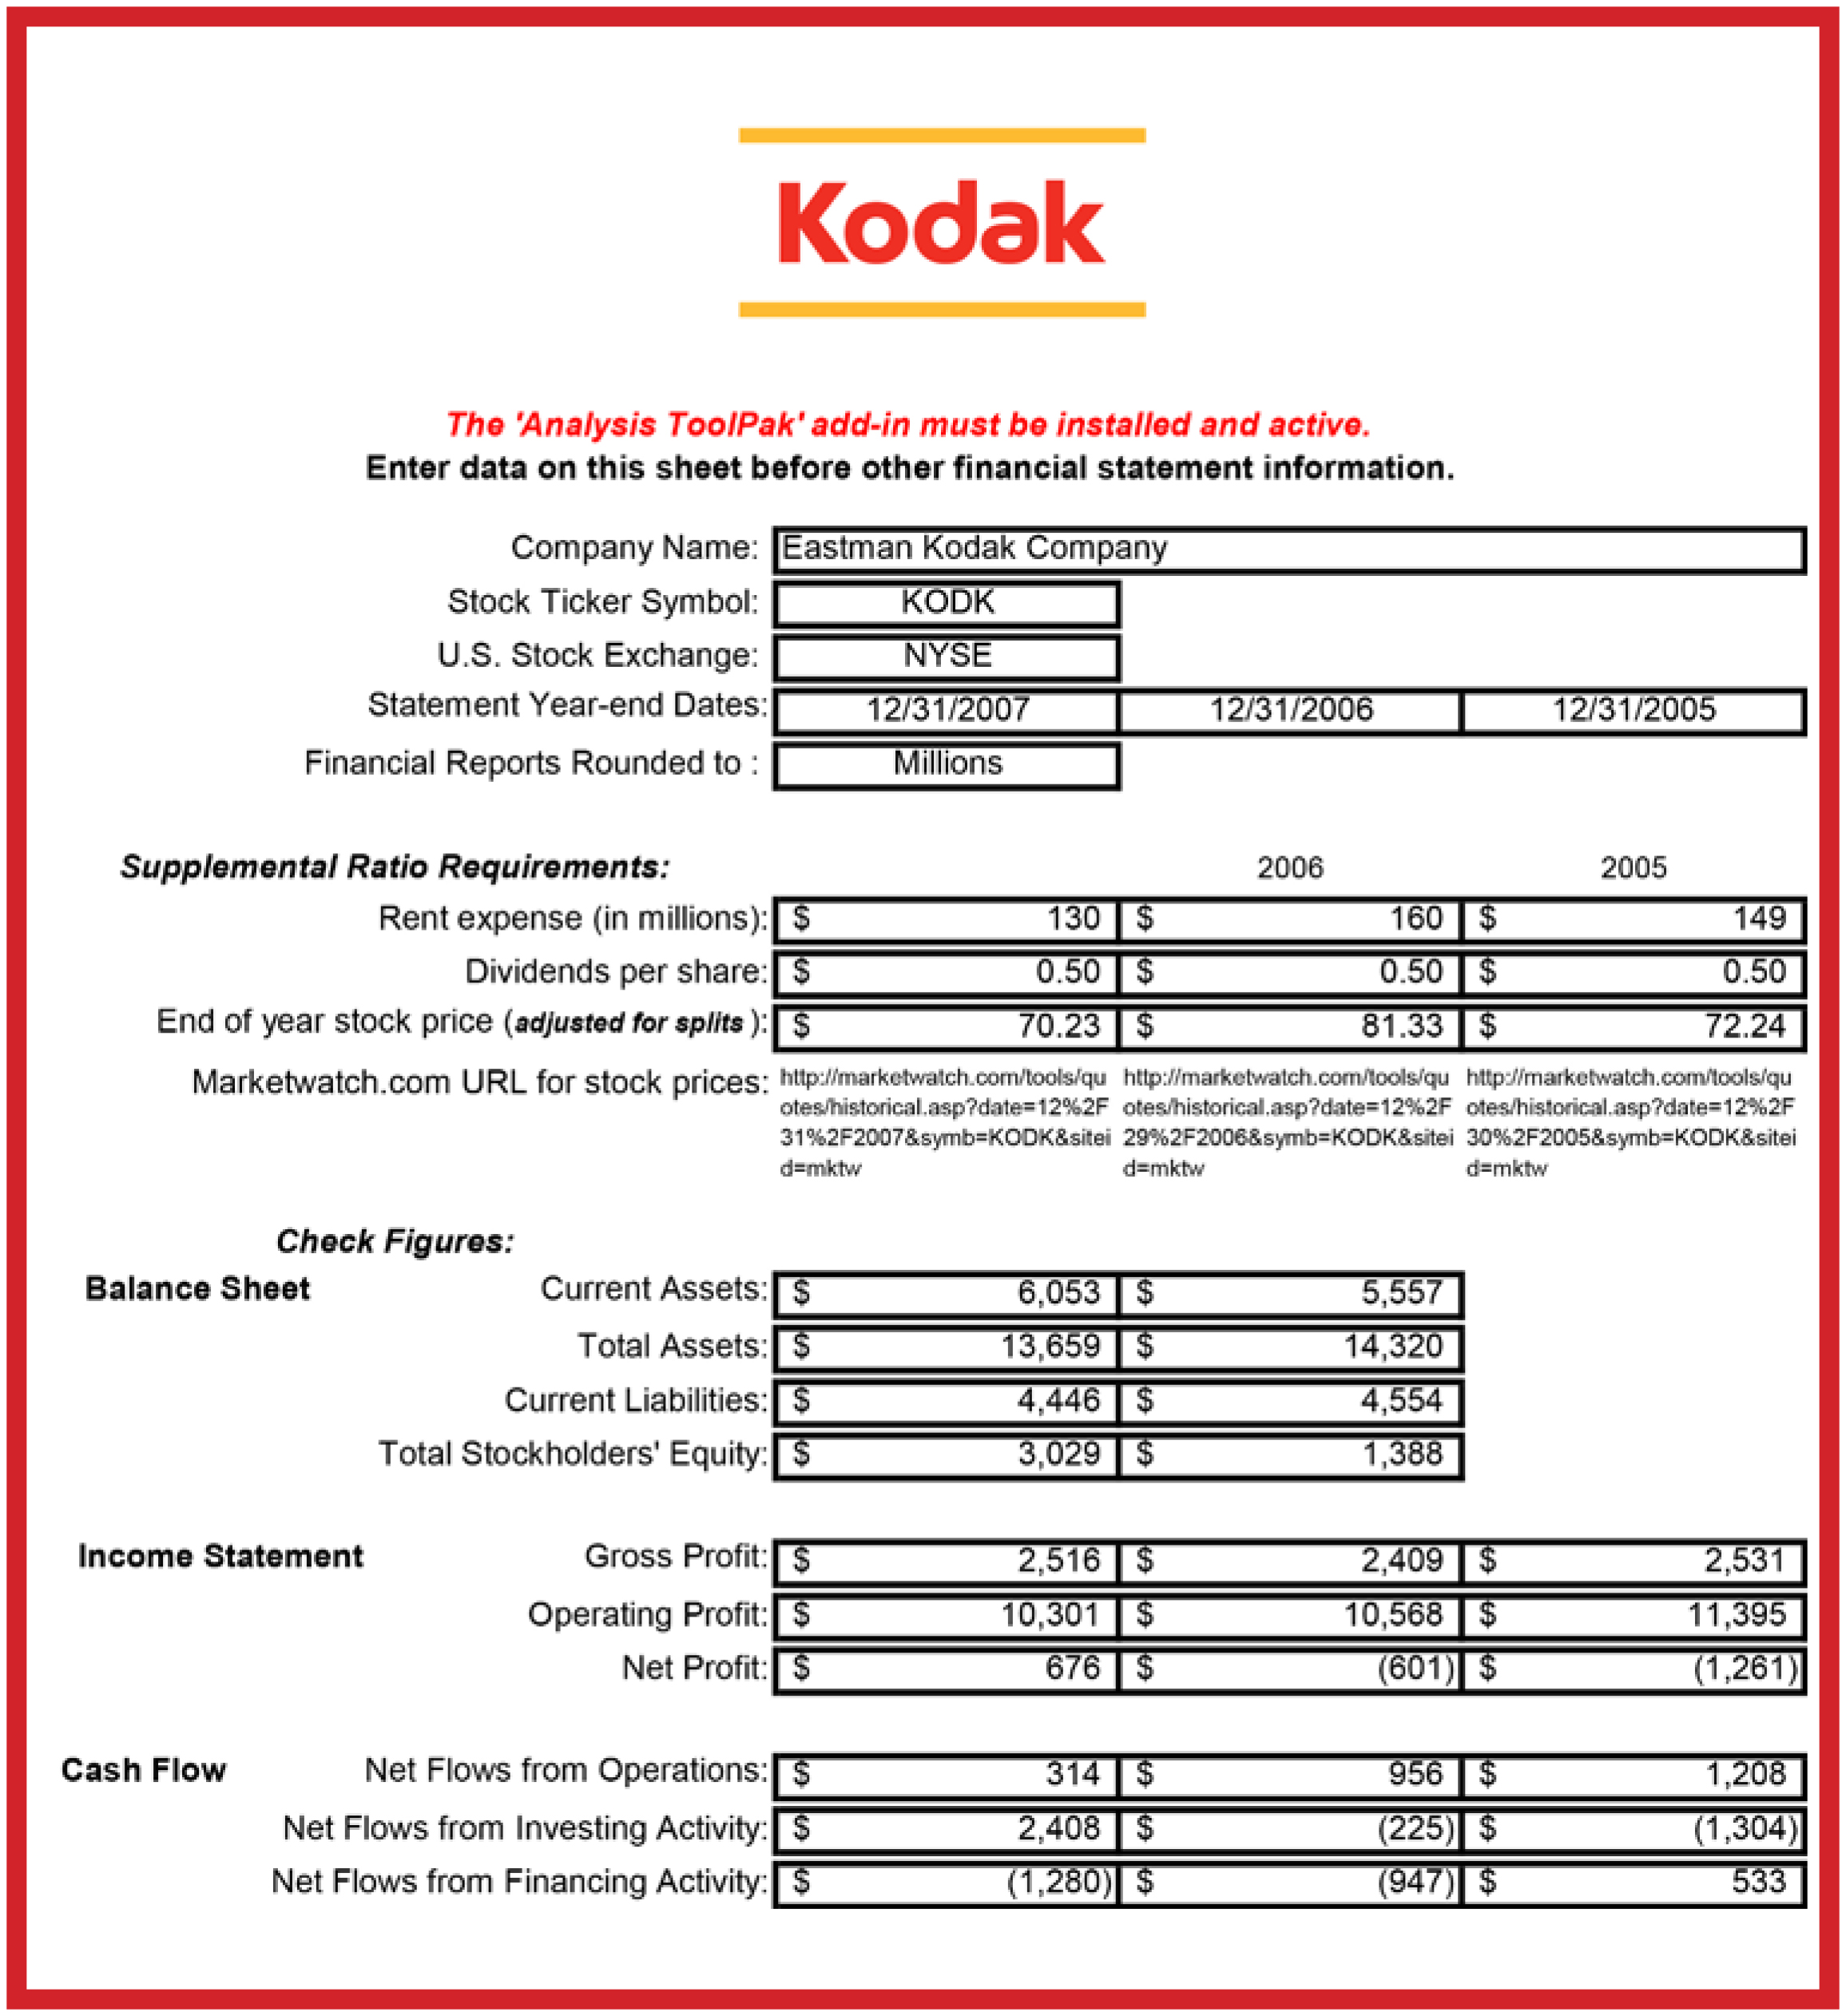 a business analysis of the kodak company Kodak is a technology company focused on imaging for business by providing disruptive technologies, breakthrough solutions, quality enhancements and professional services.